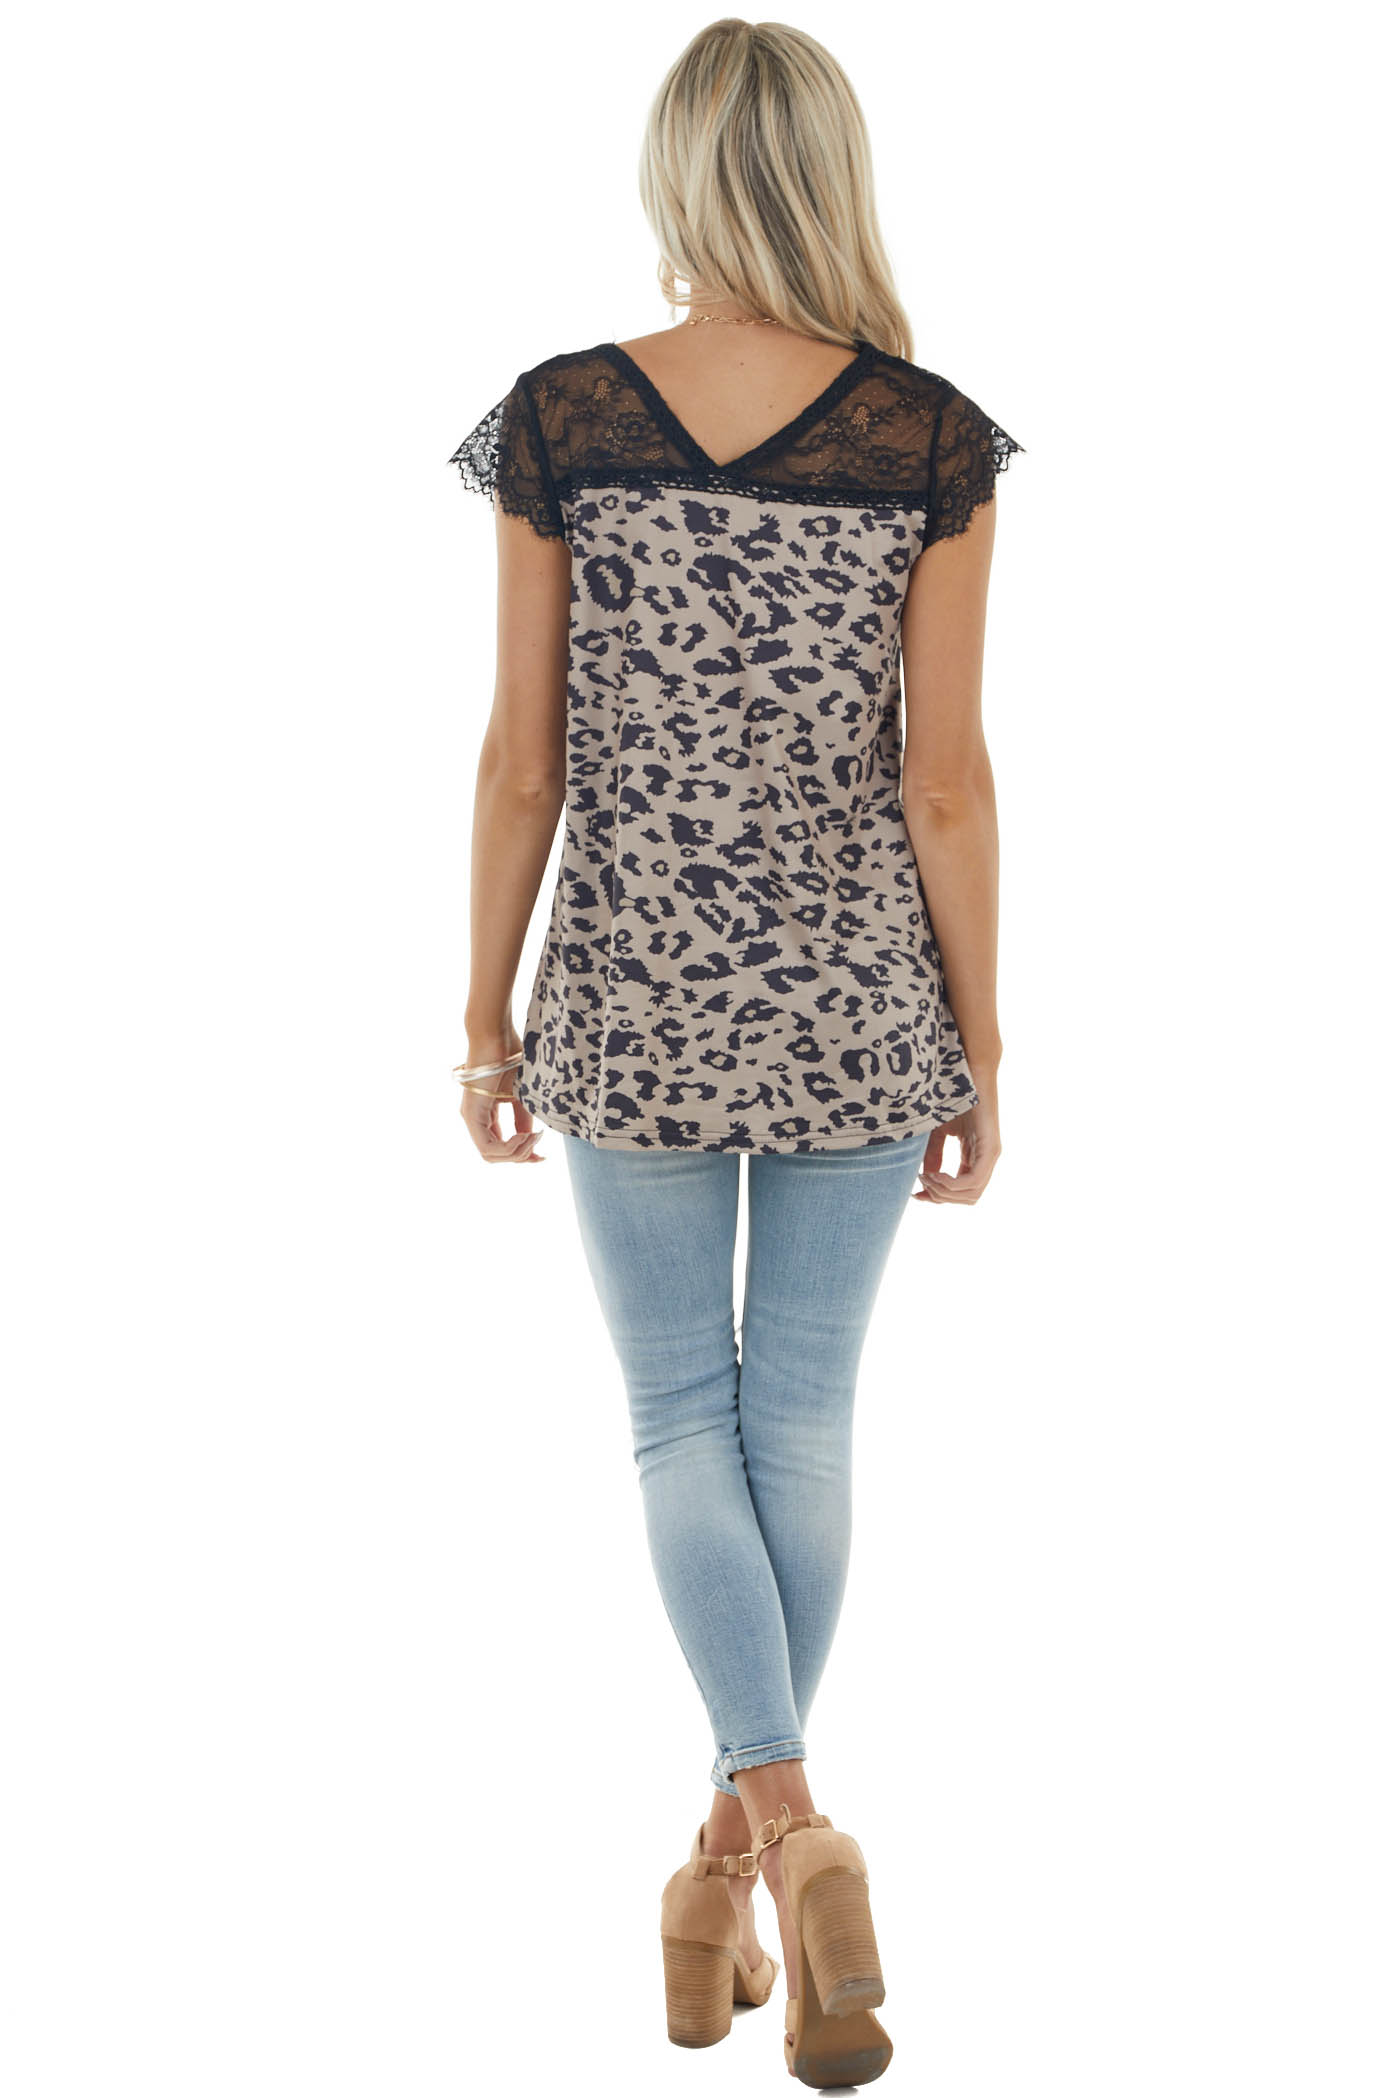 Light Peanut Leopard Print Knit Top with Lace Cap Sleeves